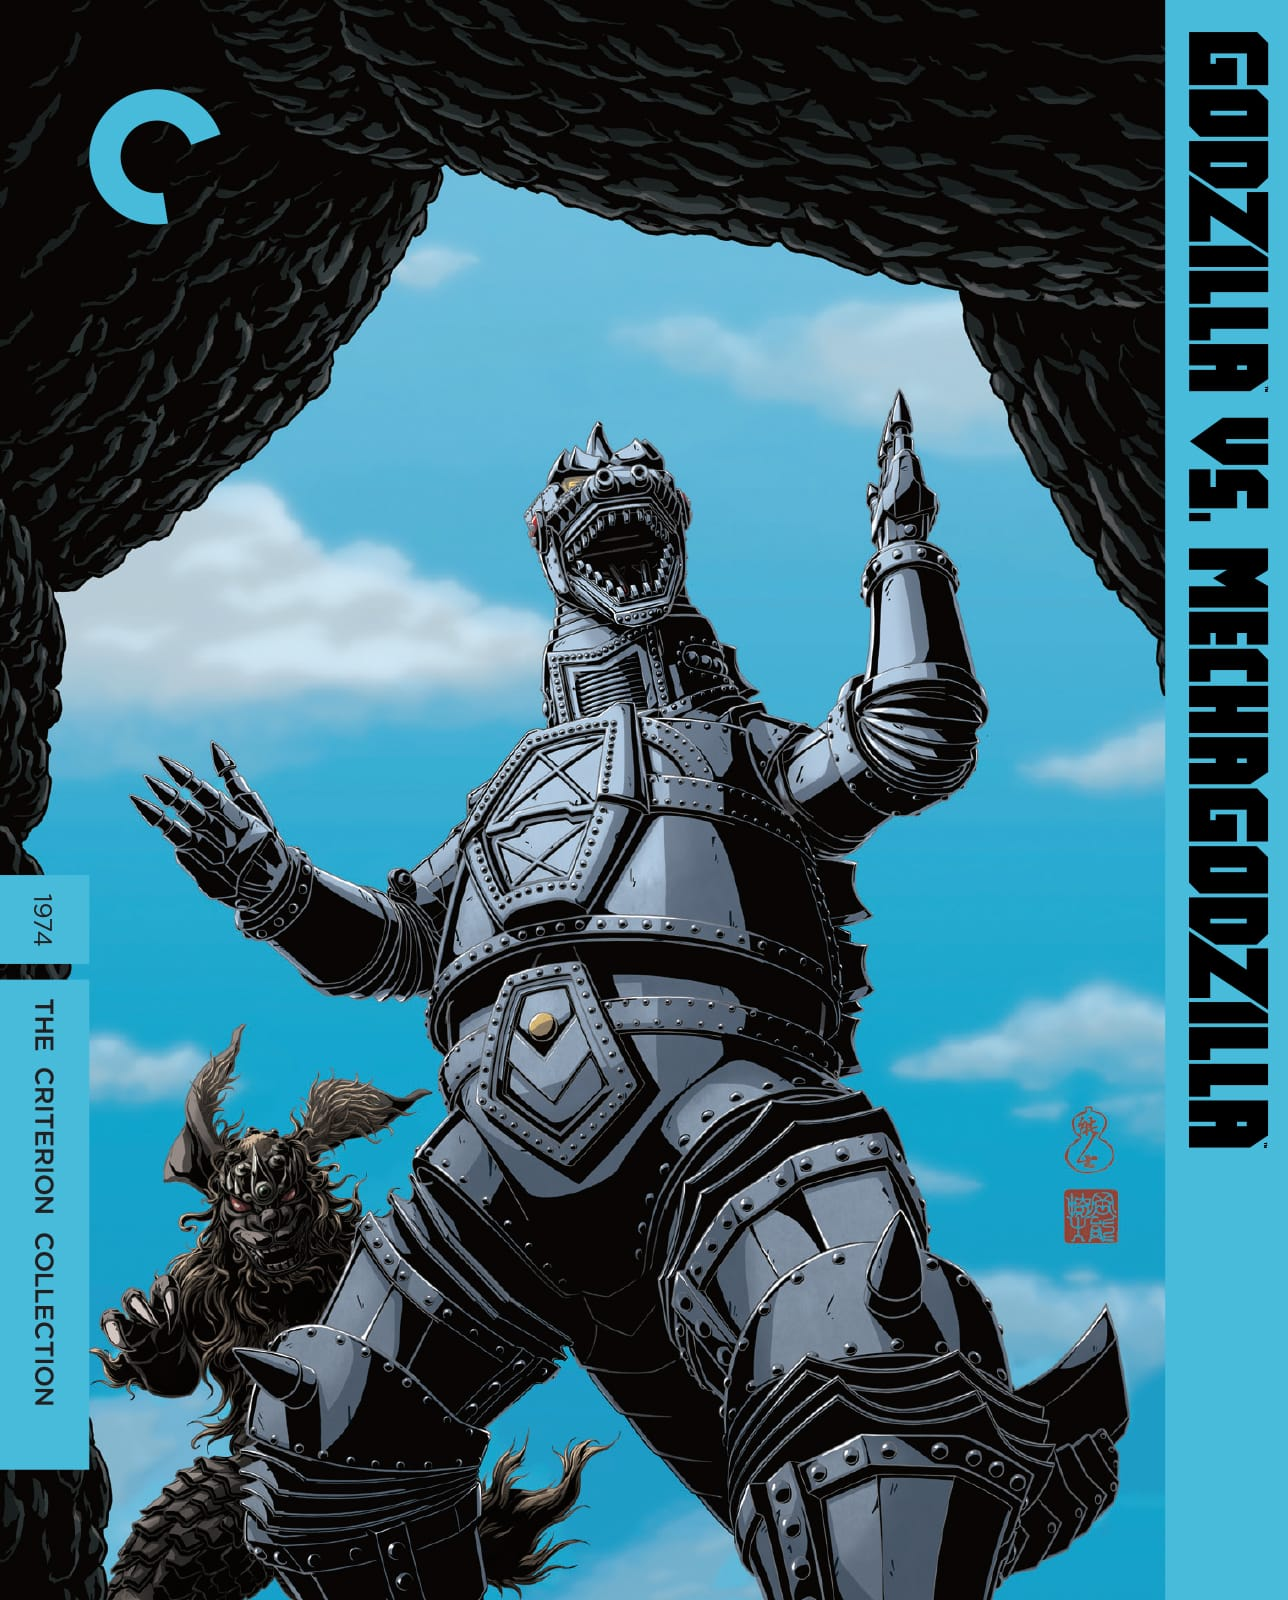 Godzilla vs. Mechagodzilla (1974) | The Criterion Collection